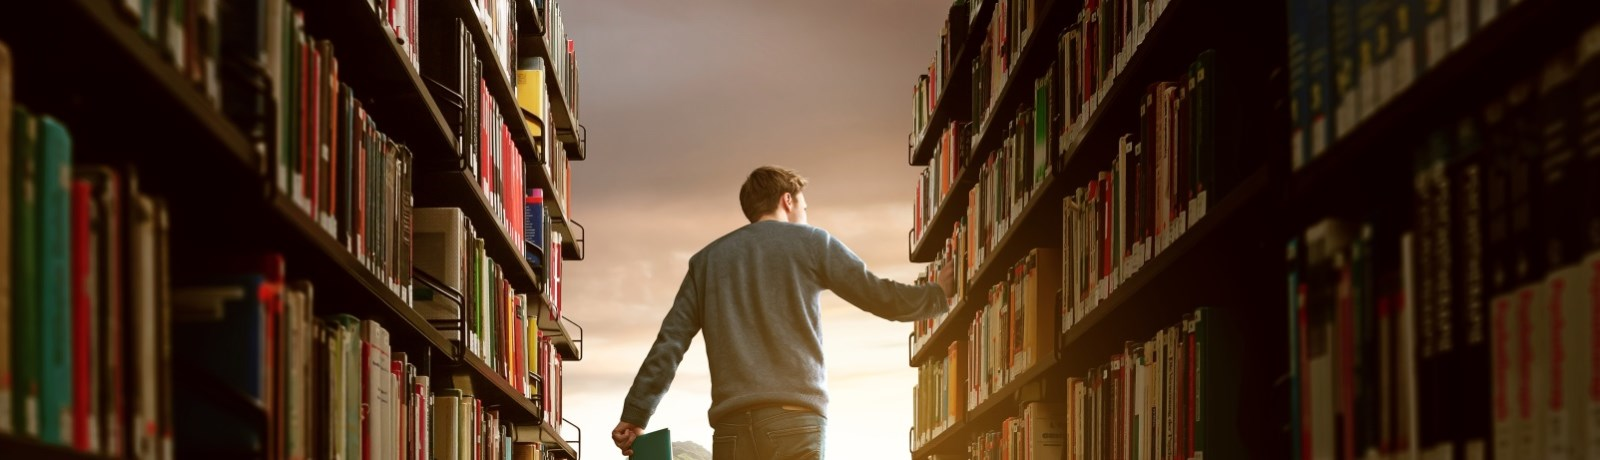 Teen walking in book stacks